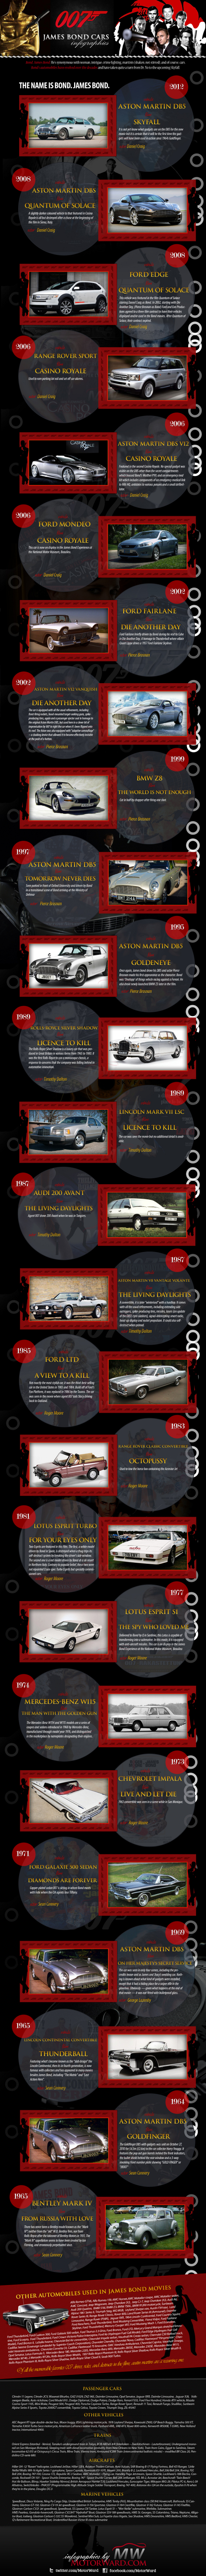 MW 007 Infographics 545 at 007 James Bond Cars   Infographics by Motorward